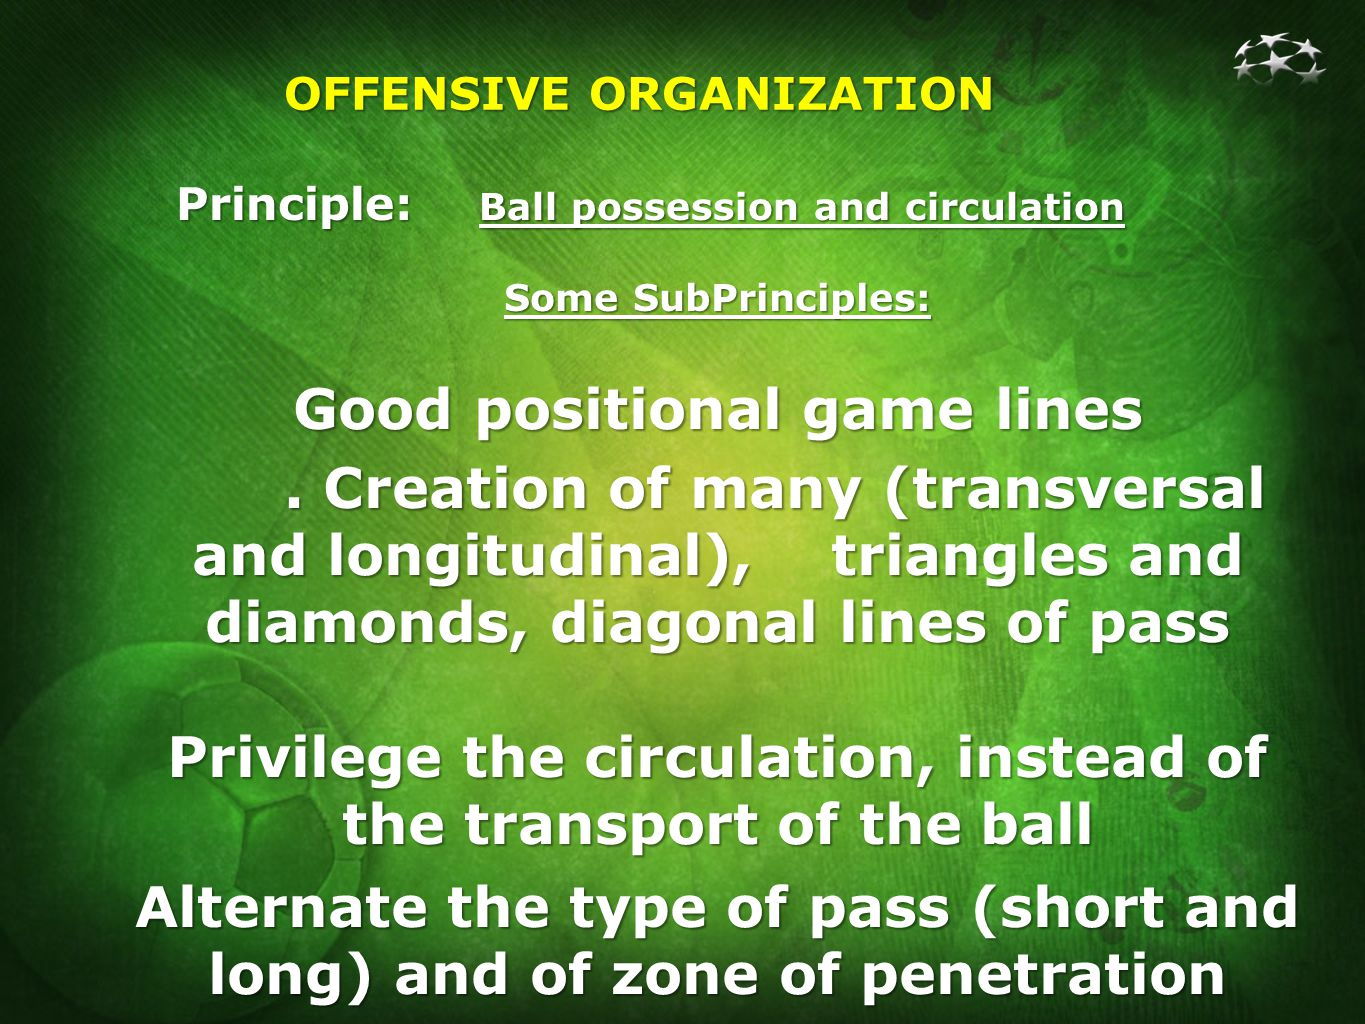 OFFENSIVE ORGANIZATION Principle: Ball possession and circulation Some SubPrinciples: Good positional game lines.